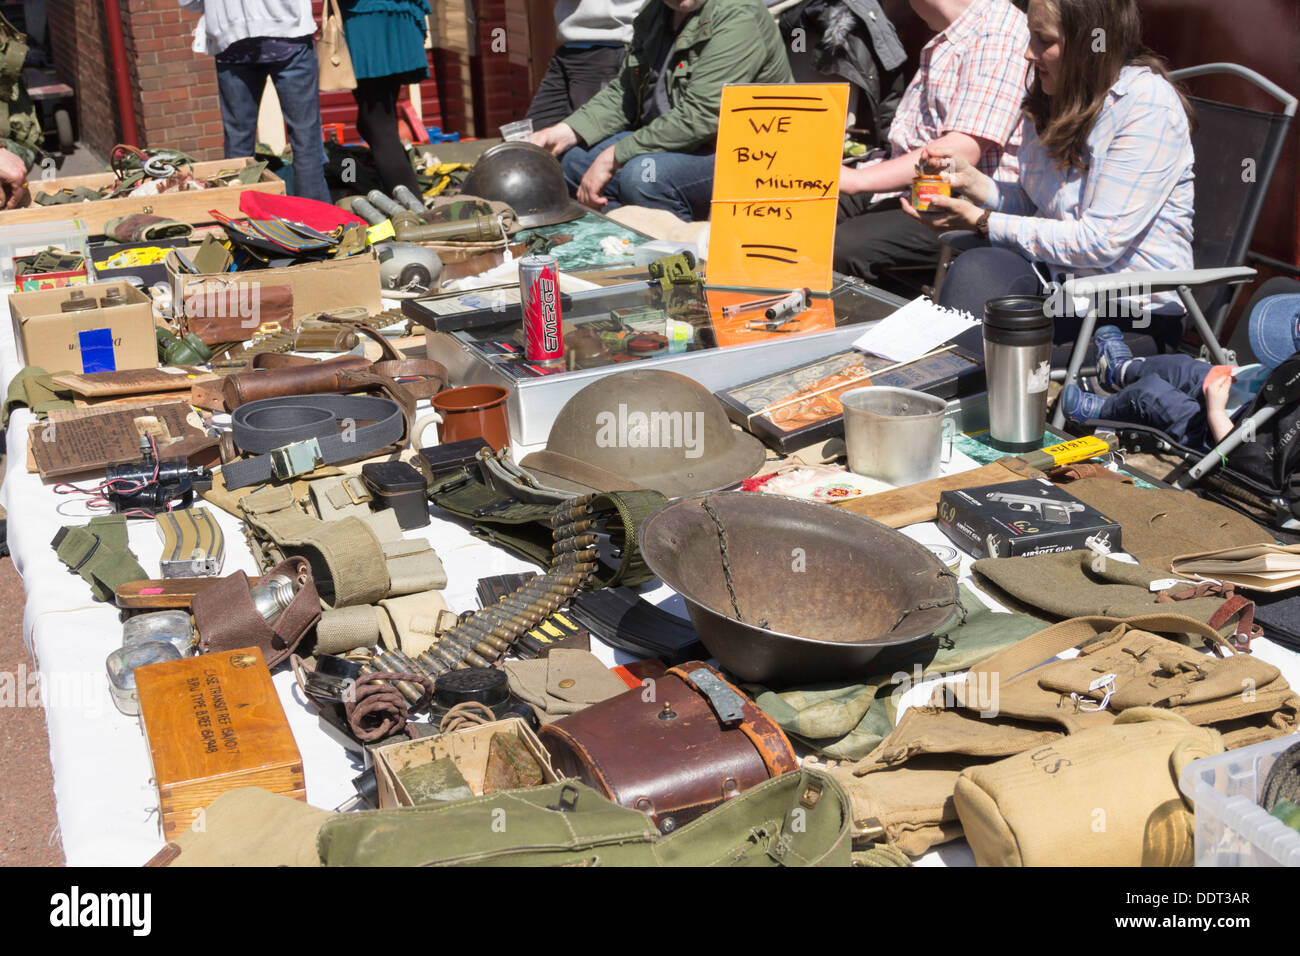 Military memorabilia stall at the 1940s 'wartime weekend' event on the East Lancashire Railway. - Stock Image